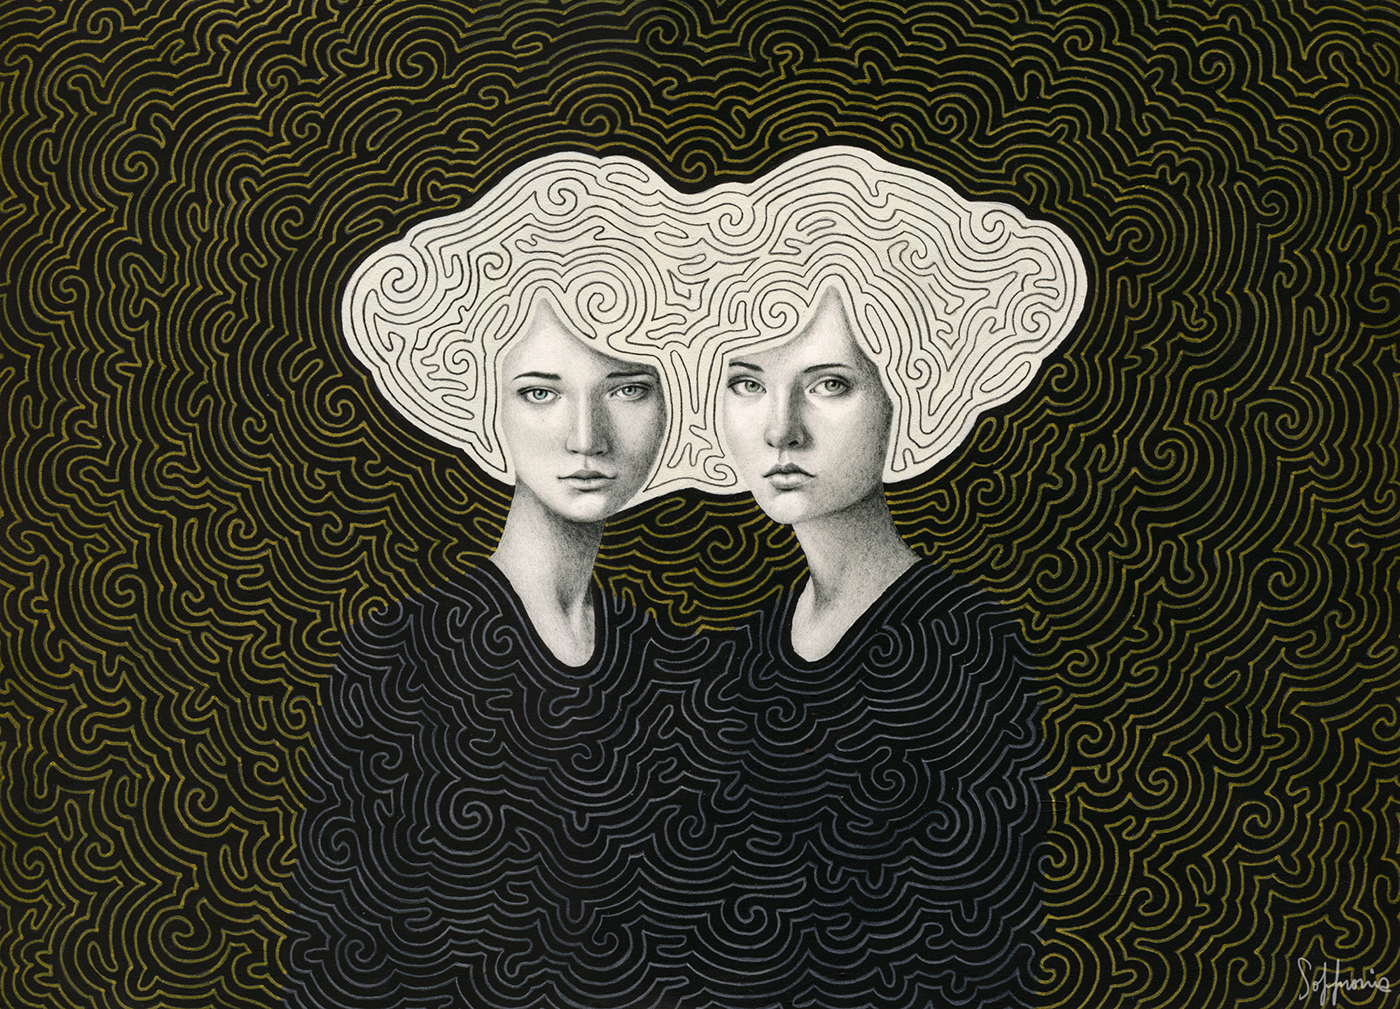 A-maze-ing Girls by Sofia Bonati